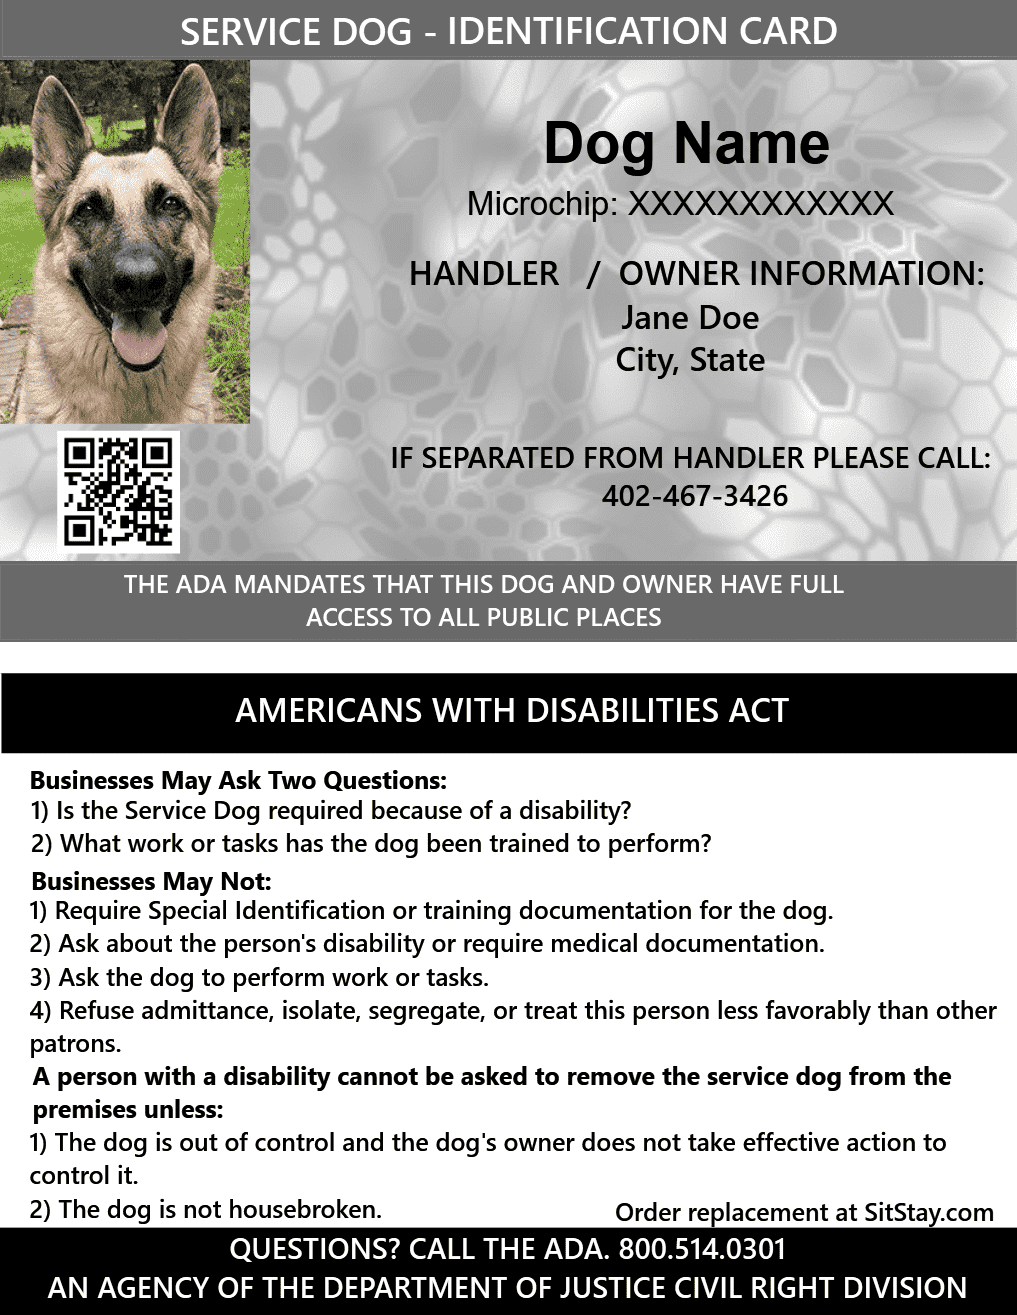 picture regarding Free Printable Service Dog Certificate titled Identification Card - Assistance Pet dog - with Holographic Basic safety Seal